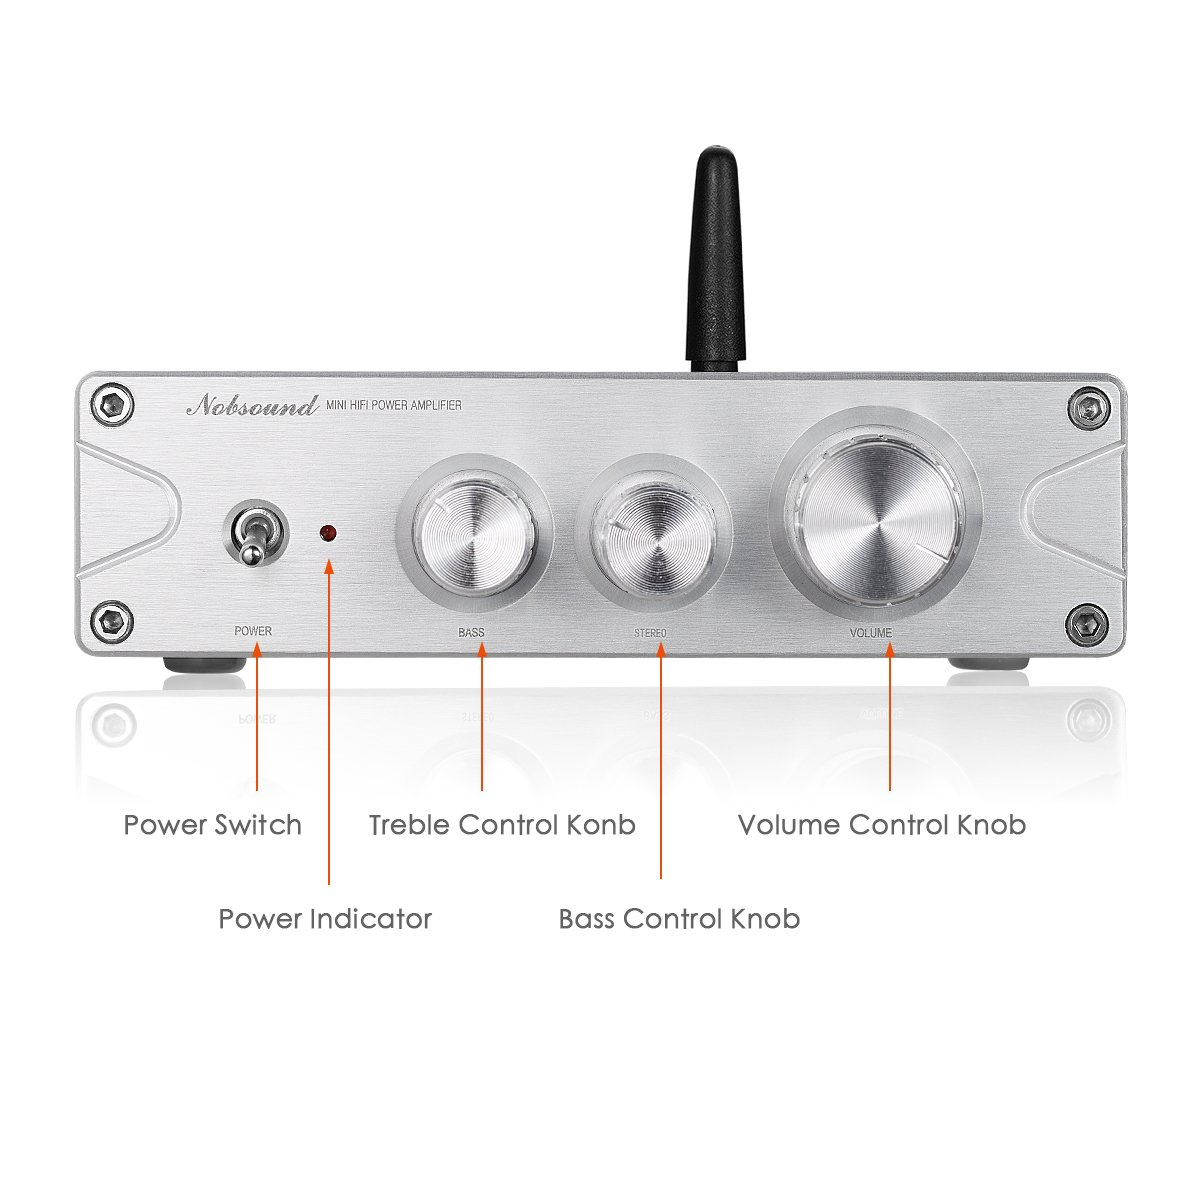 Nobsound 200w 100w2 Bluetooth 50 Atpx Hd Power Upgrade 2 X 65w Tda7498e Tripath Amp Class Stereo Amplifier Included D Hifi Digital Treble Bass Tone Control Home Audio Theater